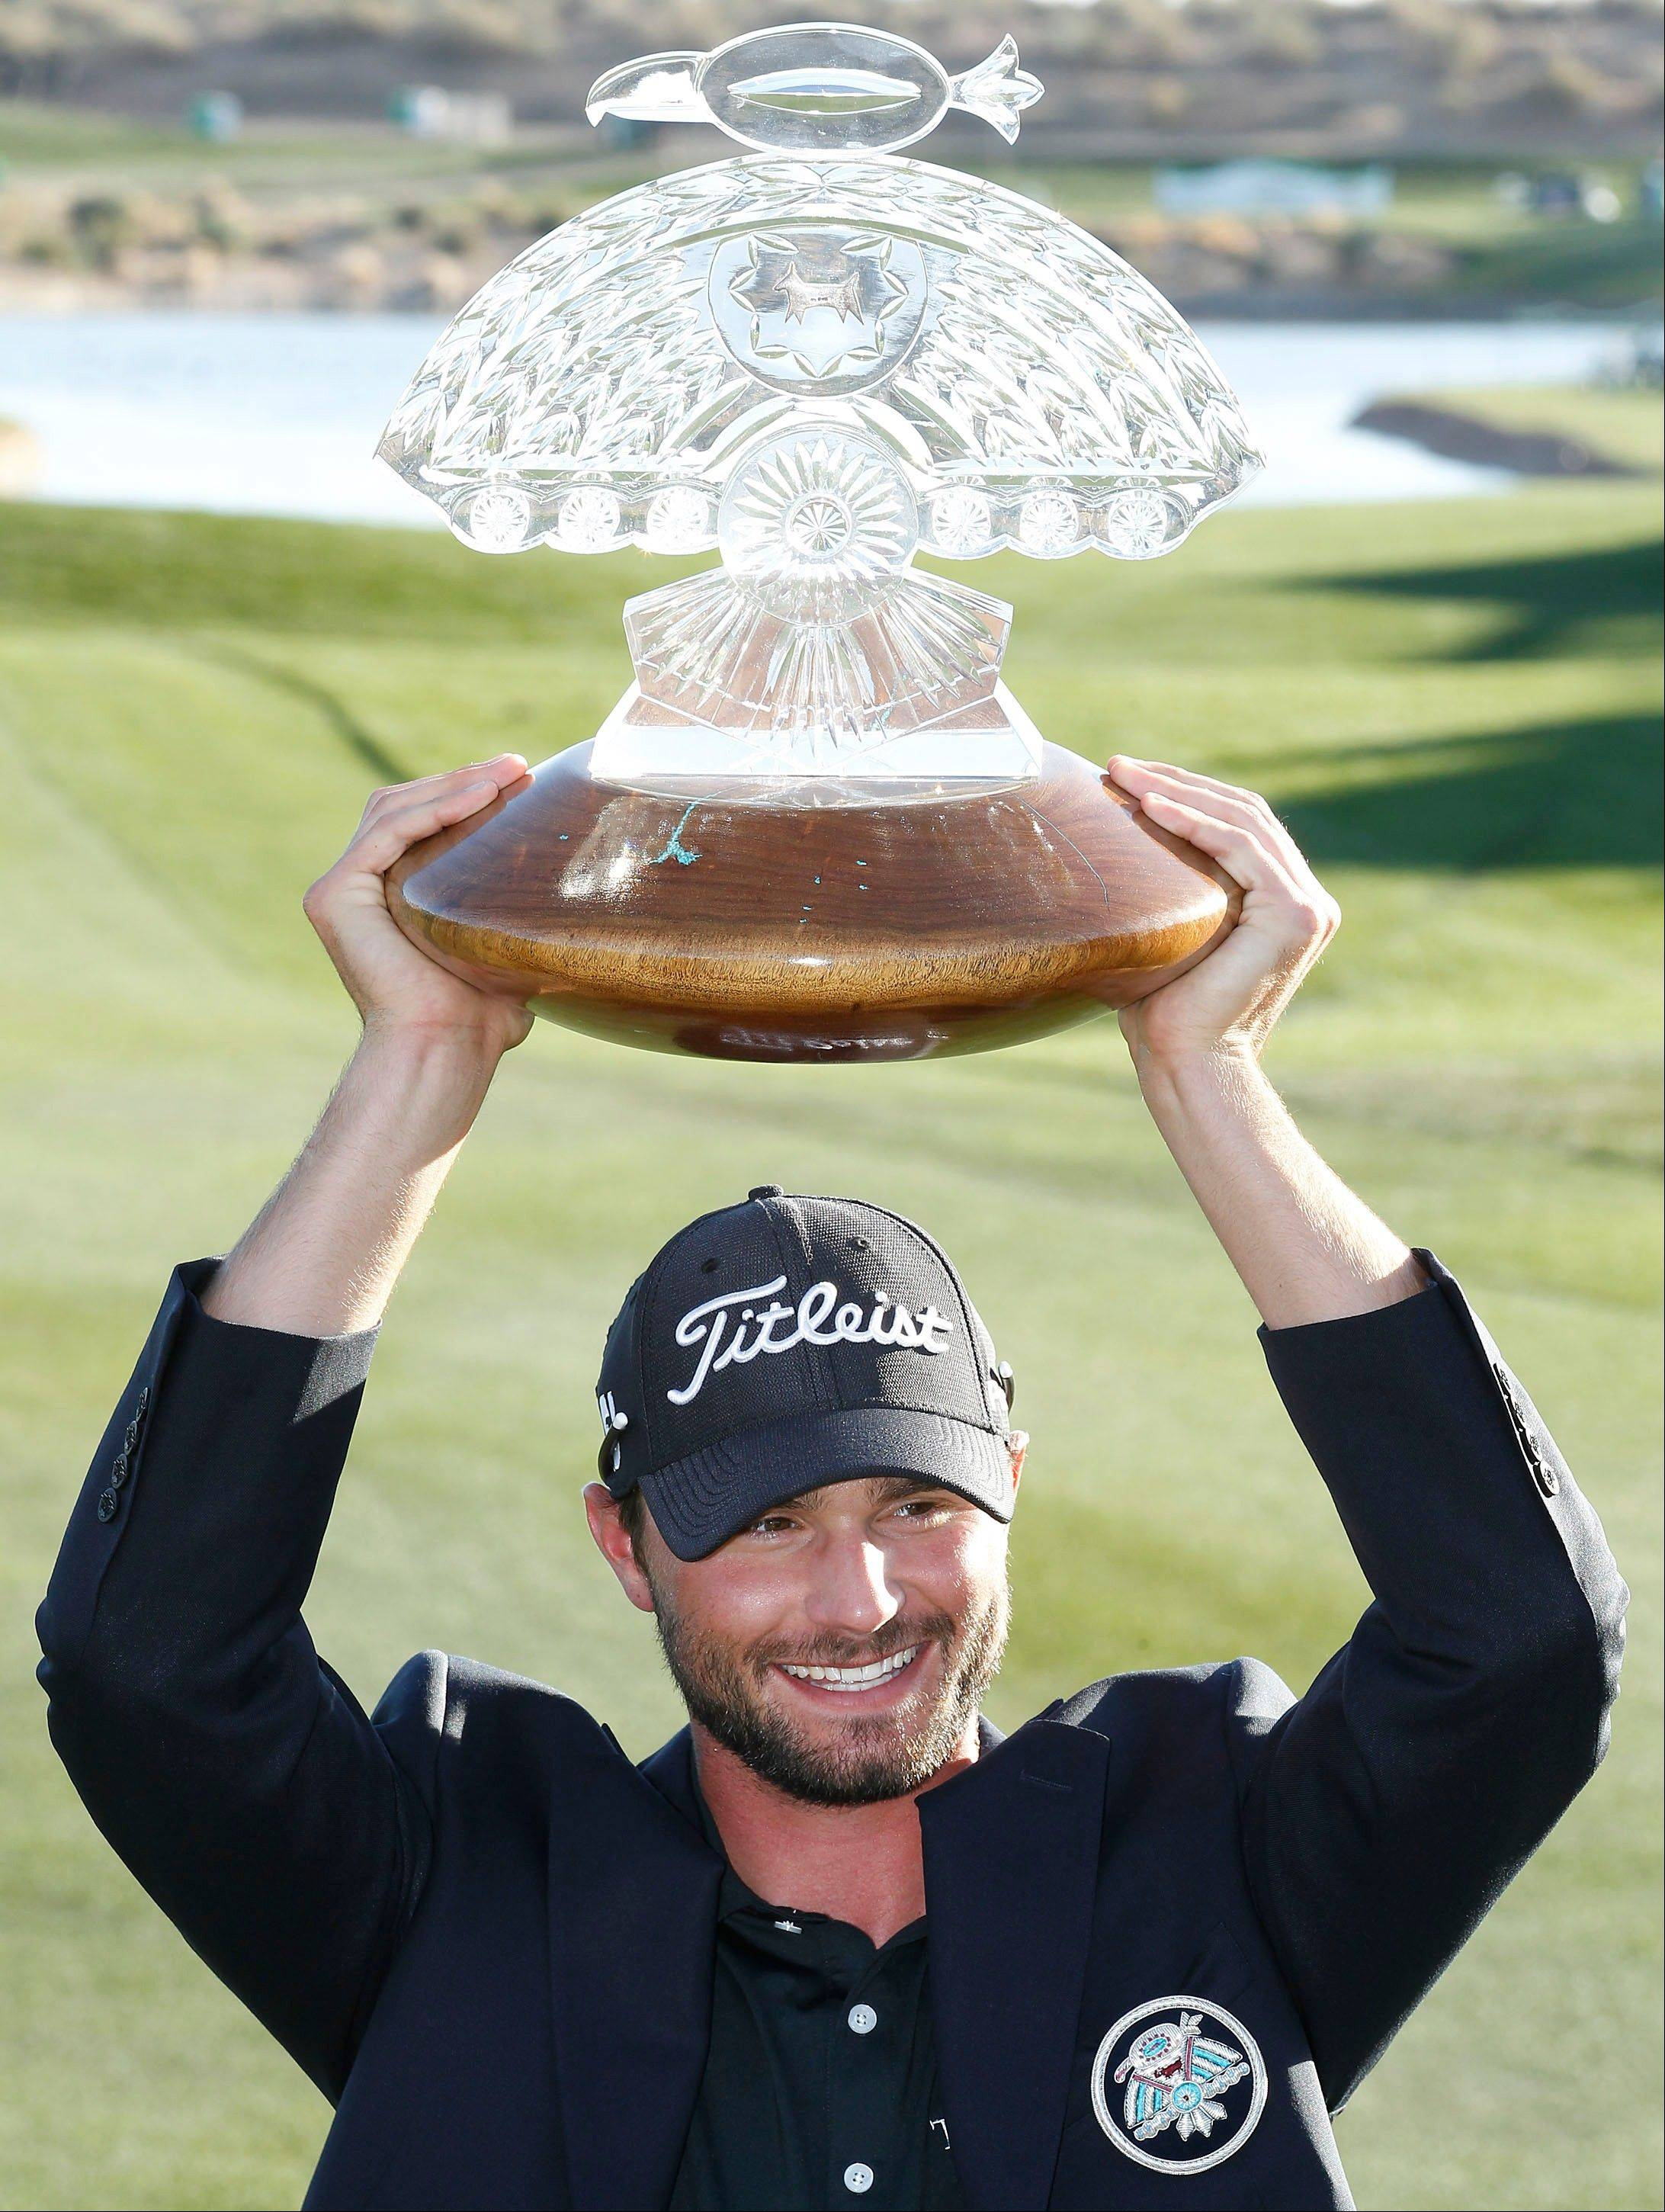 Kyle Stanley holds the championship trophy after winning the Phoenix Open golf tournament Sunday, Feb. 5, 2012, in Scottsdale, Ariz.